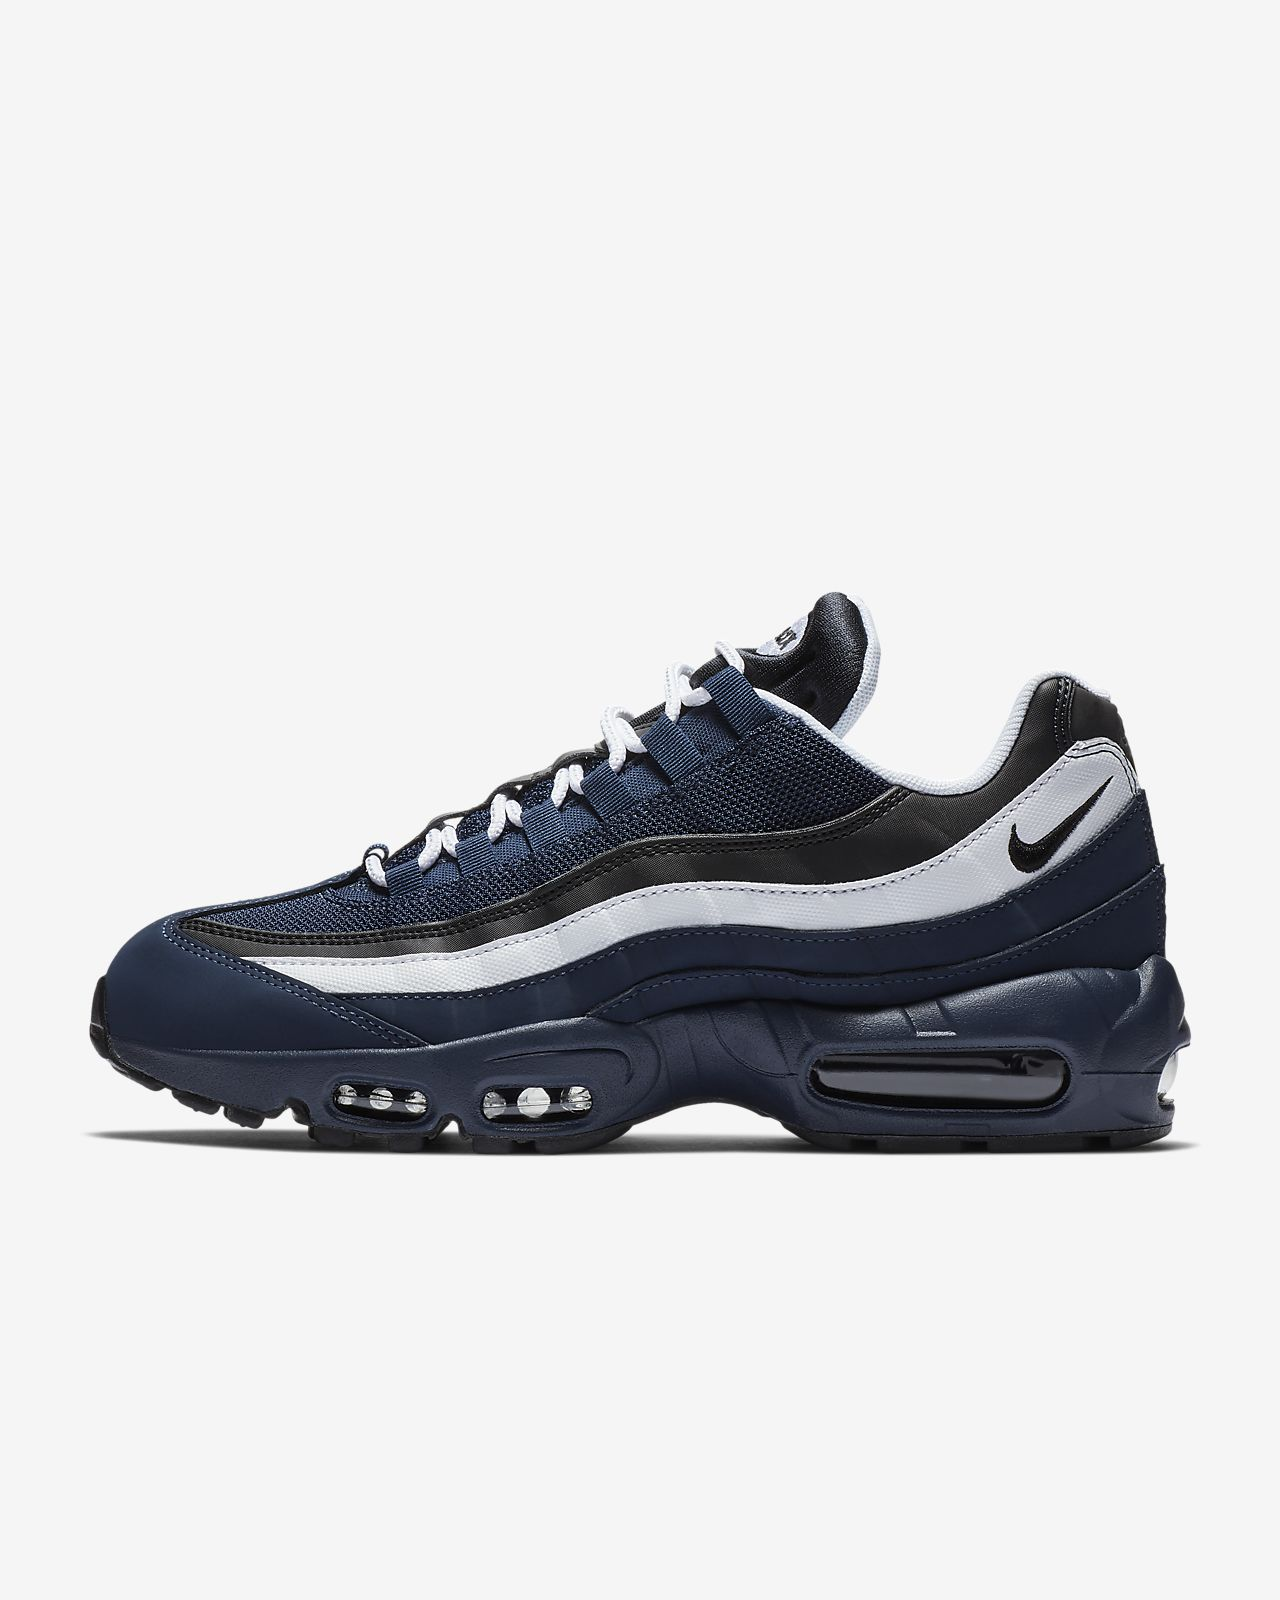 0fbf0e31e117 Nike Air Max 95 Essential Men s Shoe. Nike.com AU